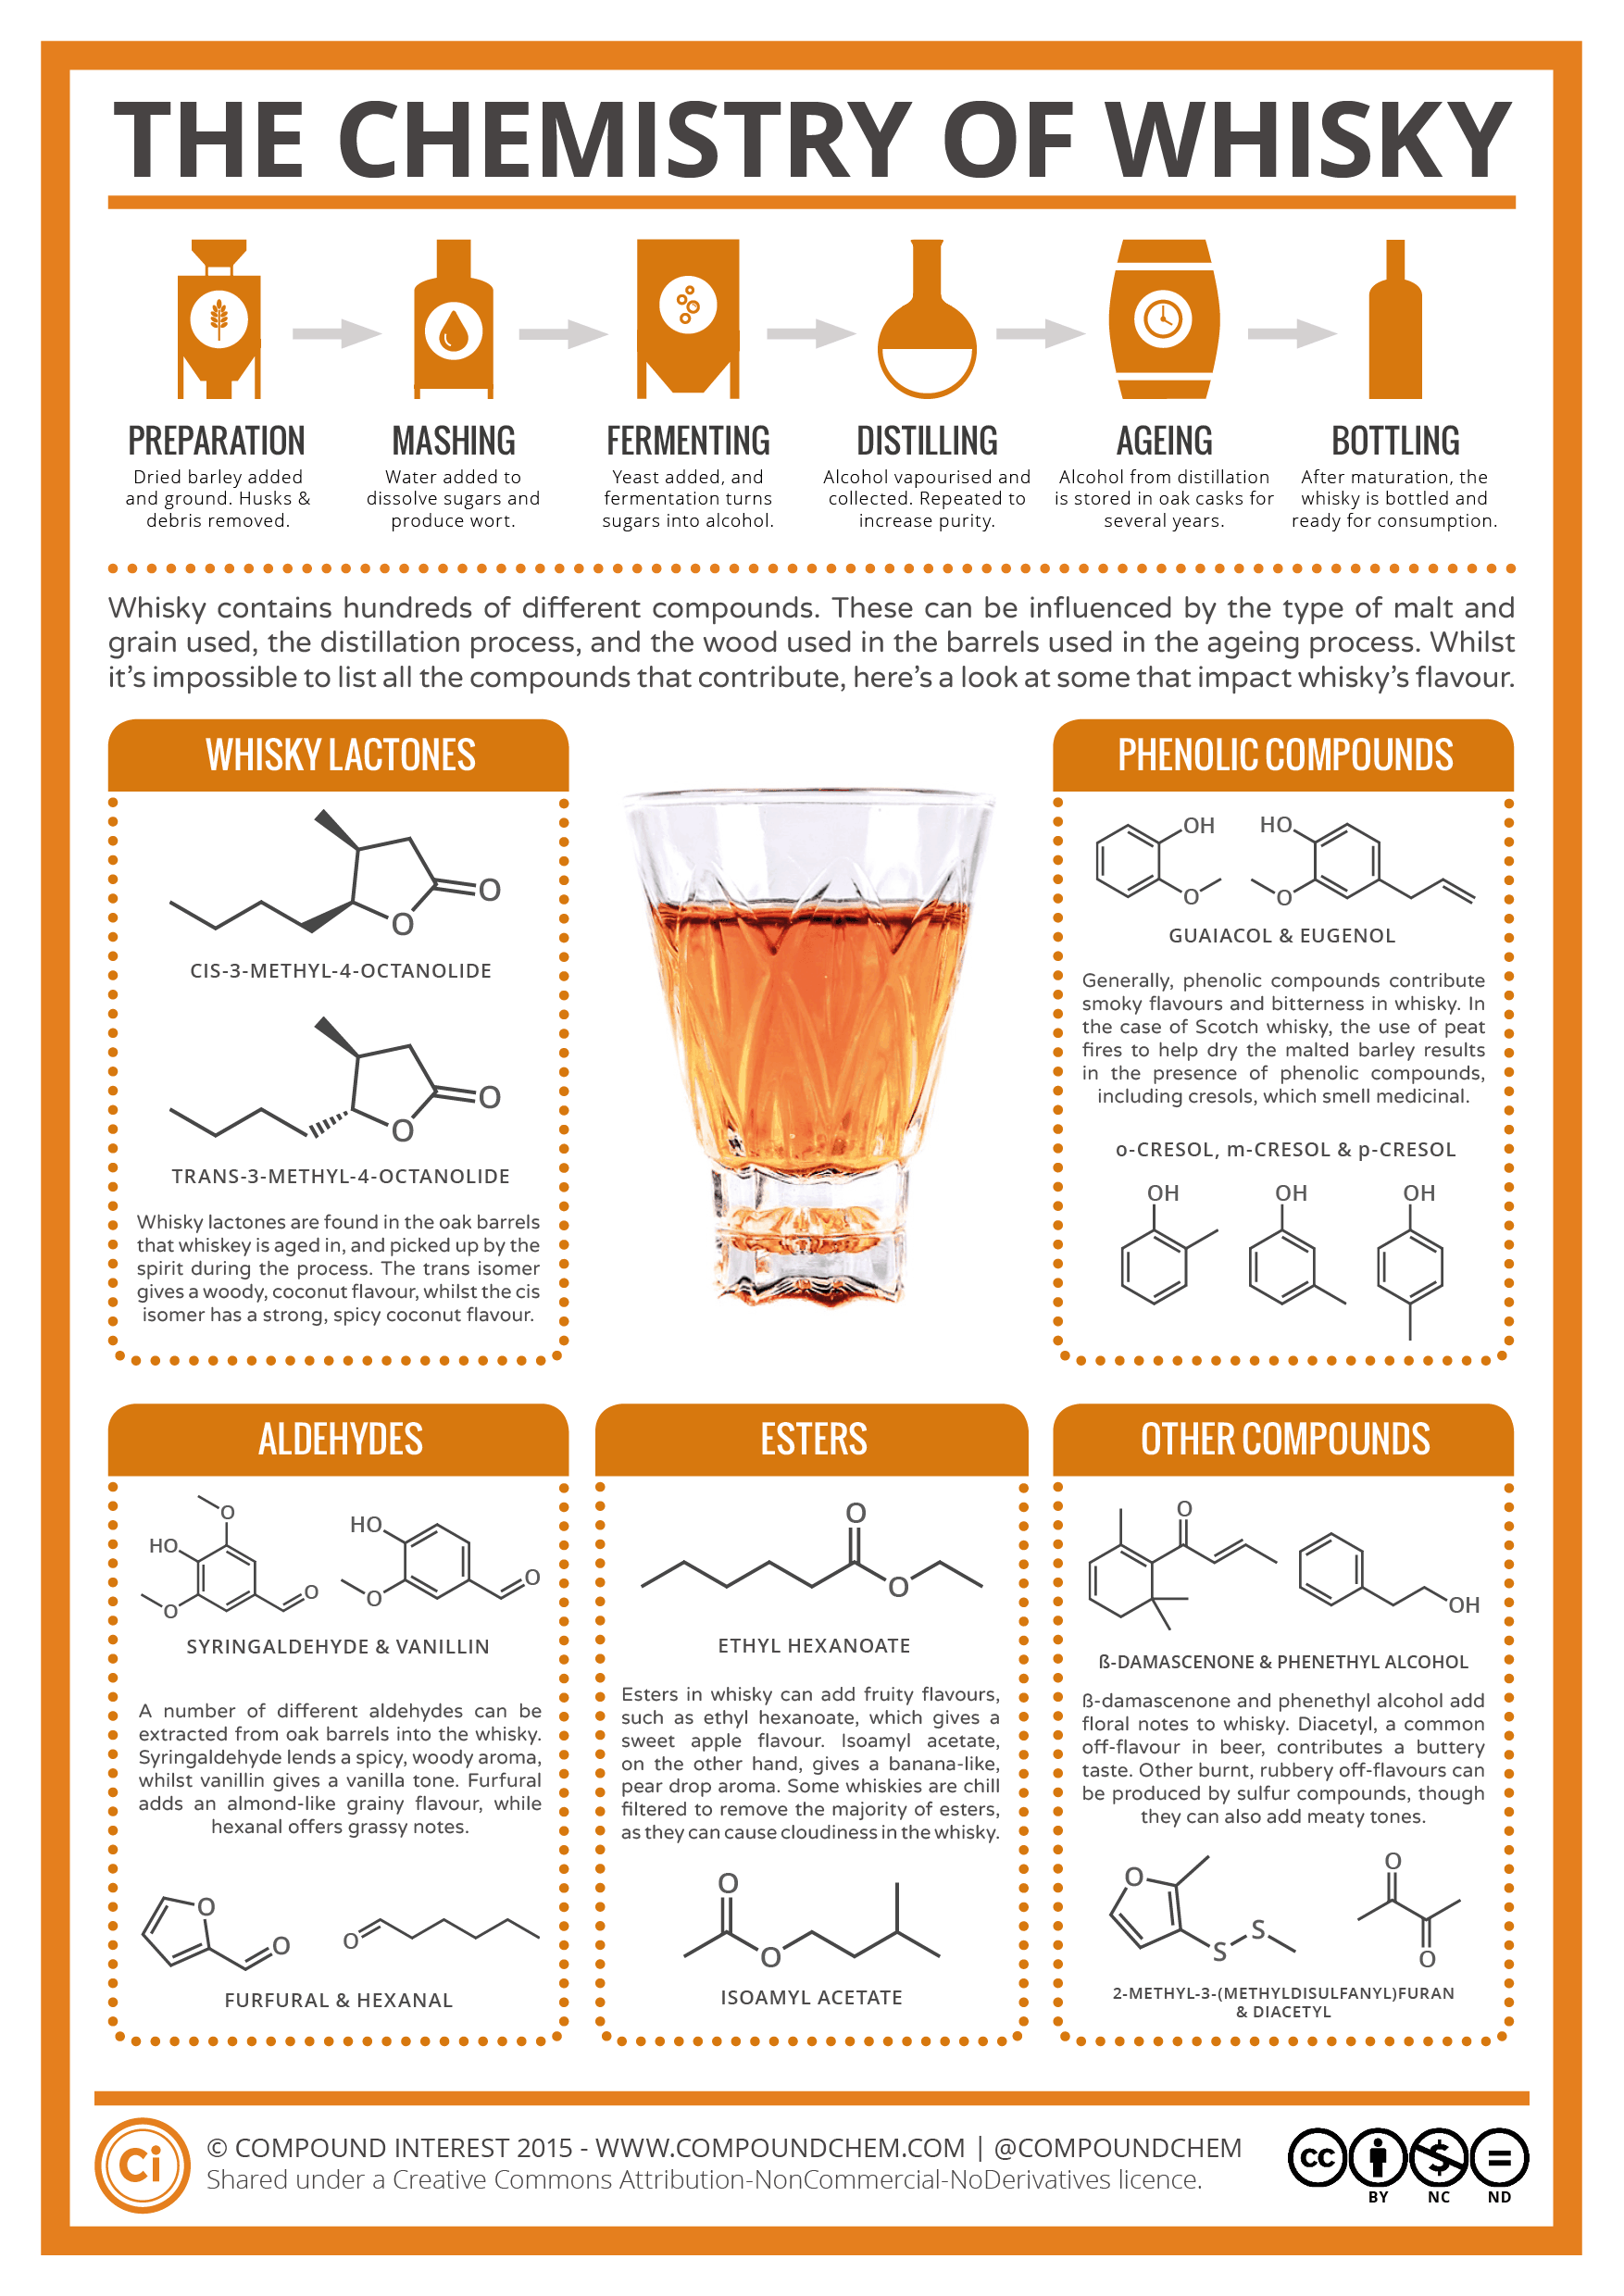 Compound interest the chemistry of whisky chemistry of whisky biocorpaavc